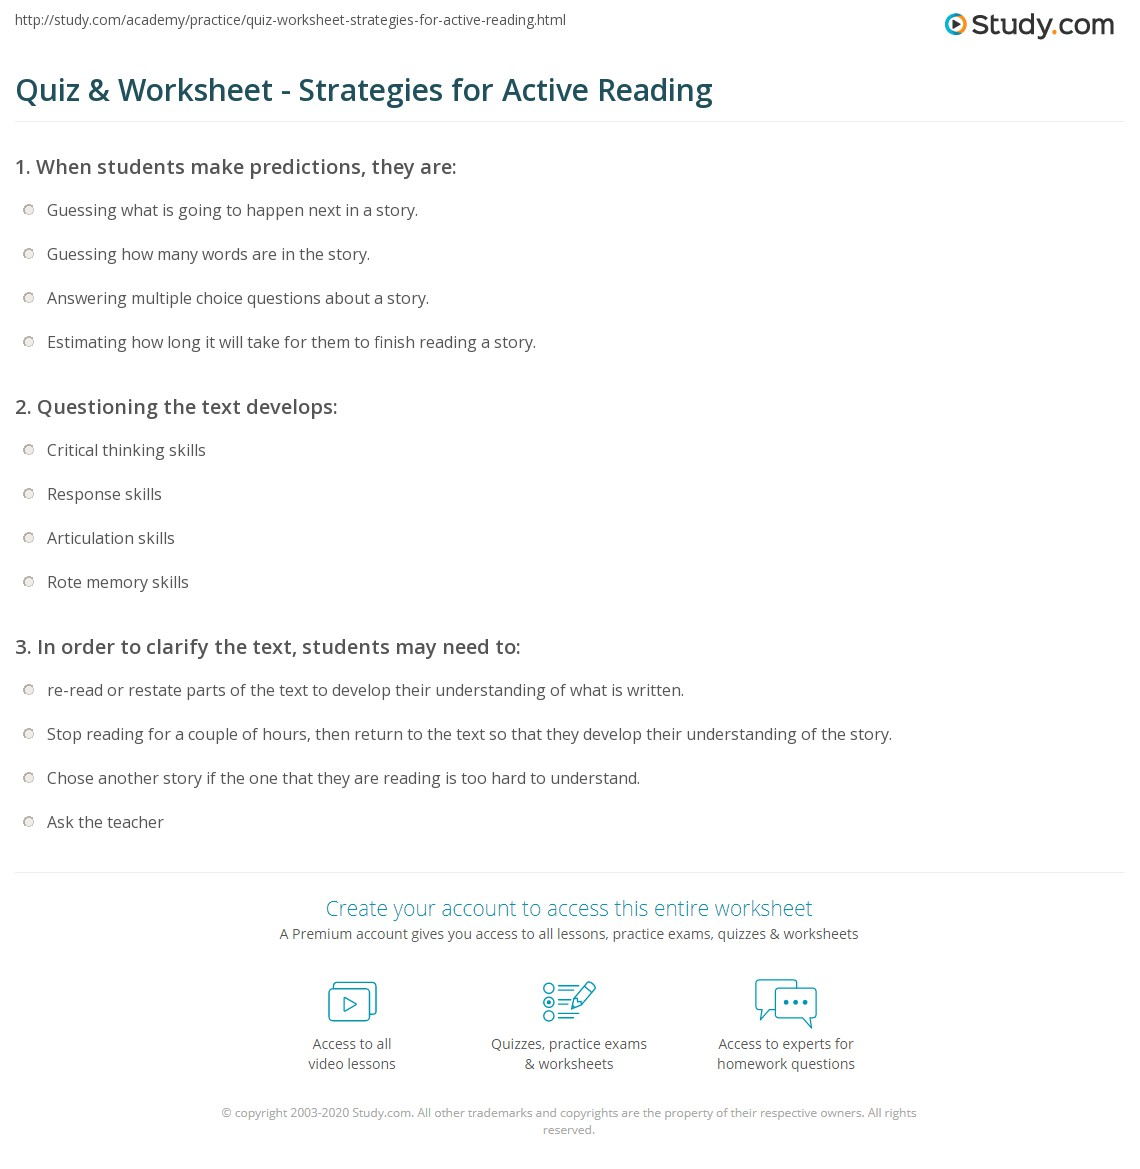 Worksheets Active Reading Strategies Worksheet quiz worksheet strategies for active reading study com print what is definition worksheet